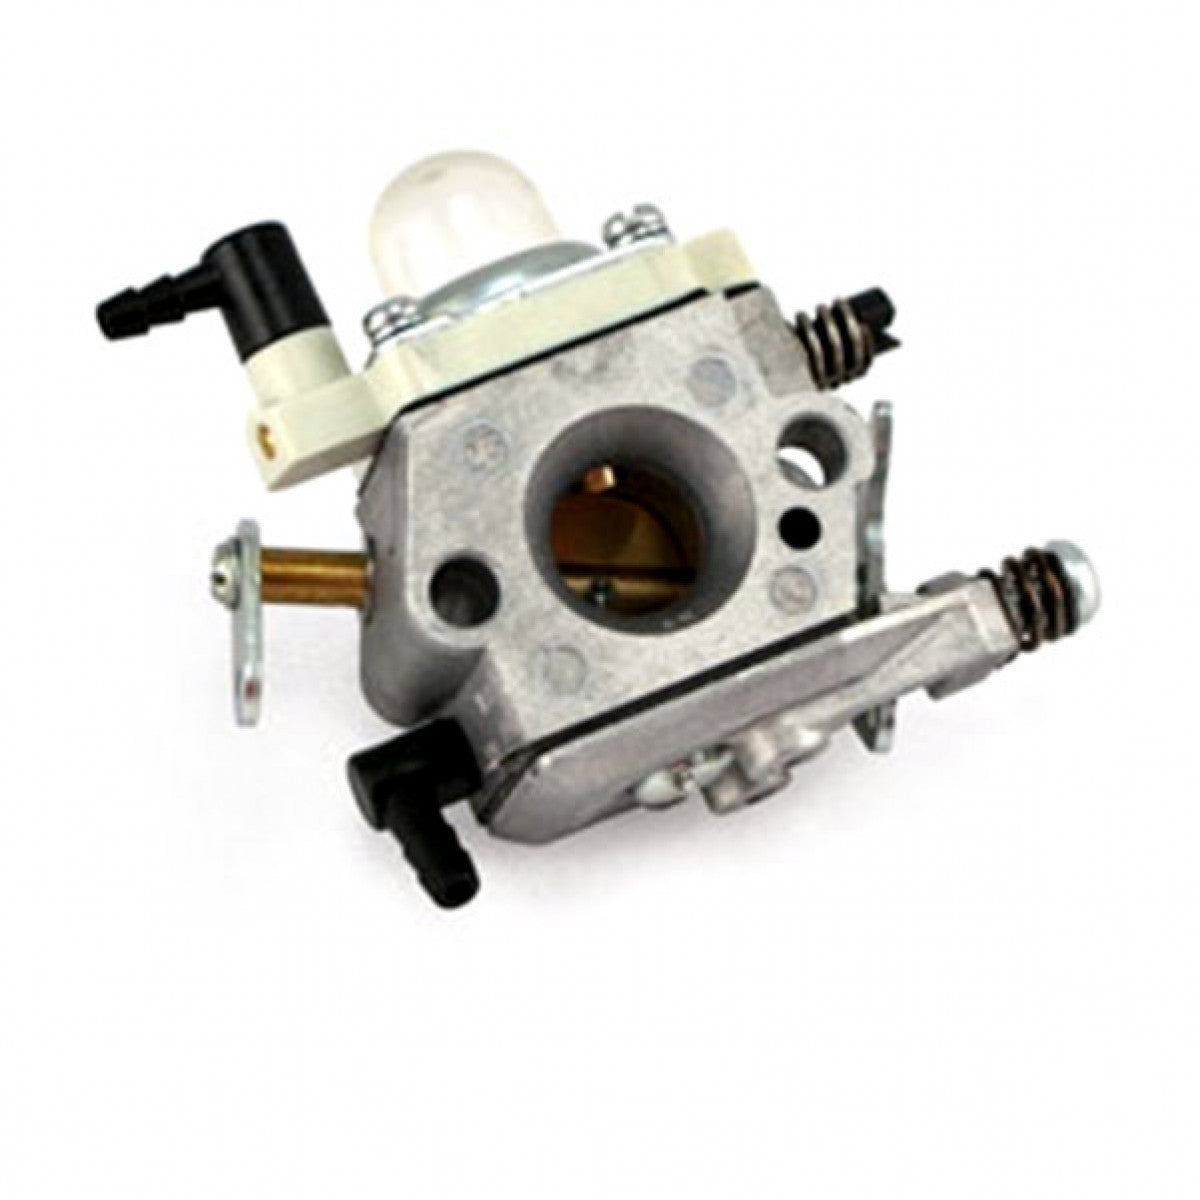 Walbro: WT-813 High-Performance Carburetor for Zenoah / CY Engines